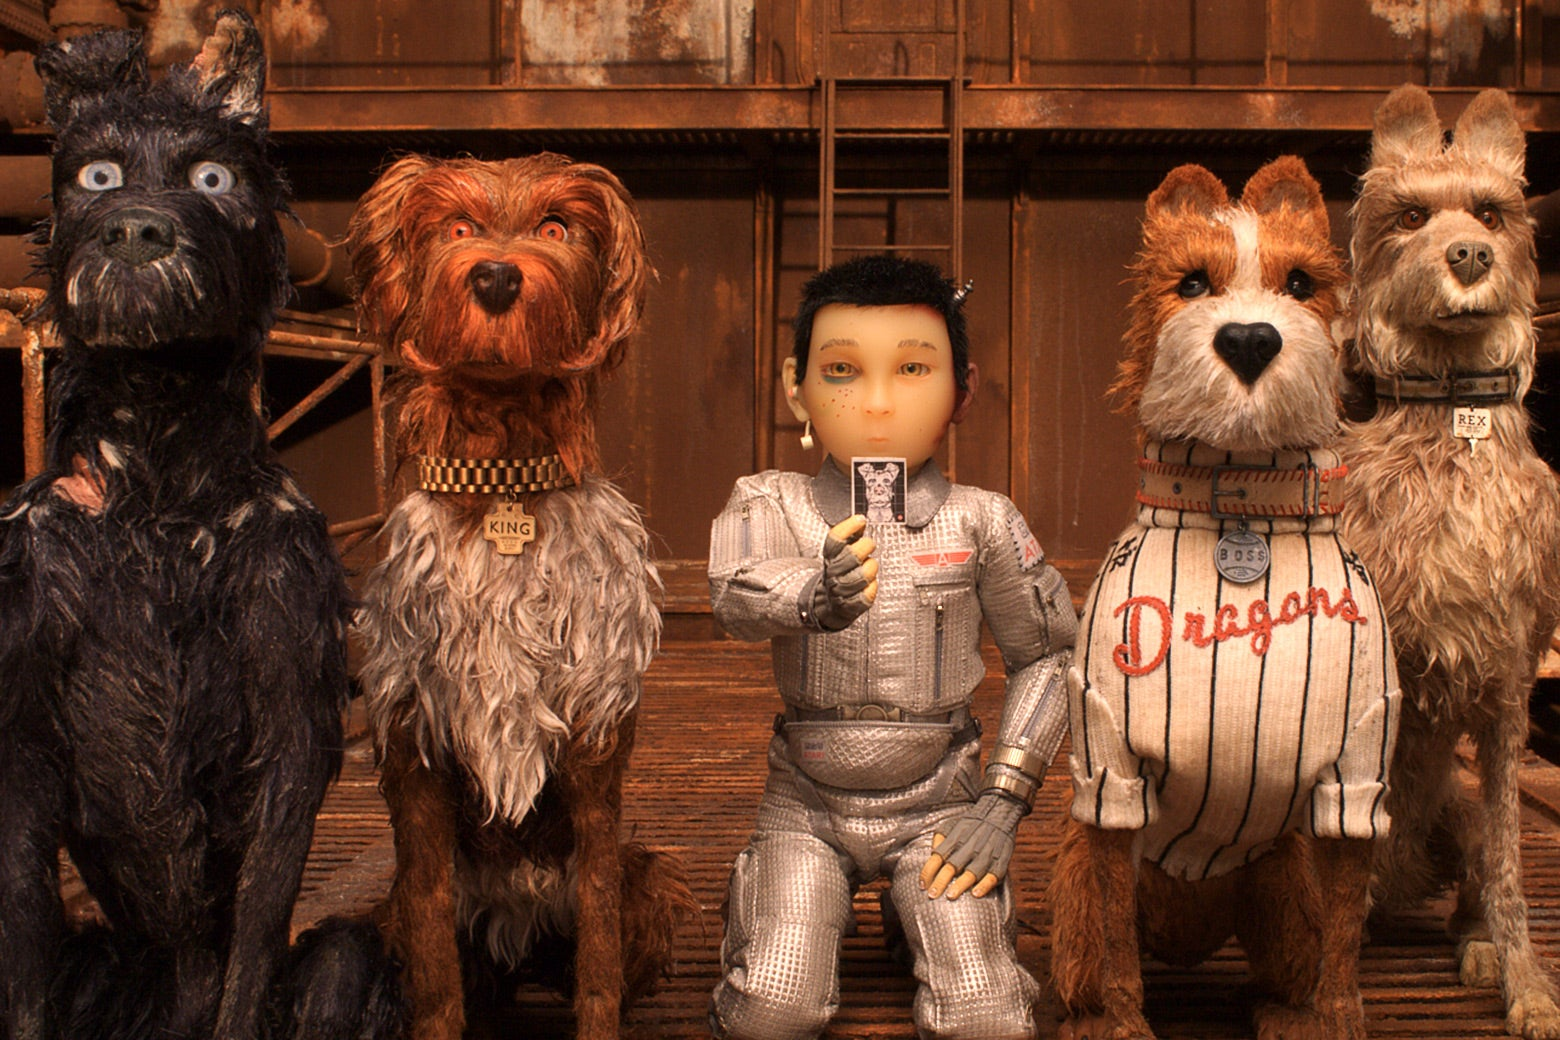 Four dogs and a boy line up in a still from the film.